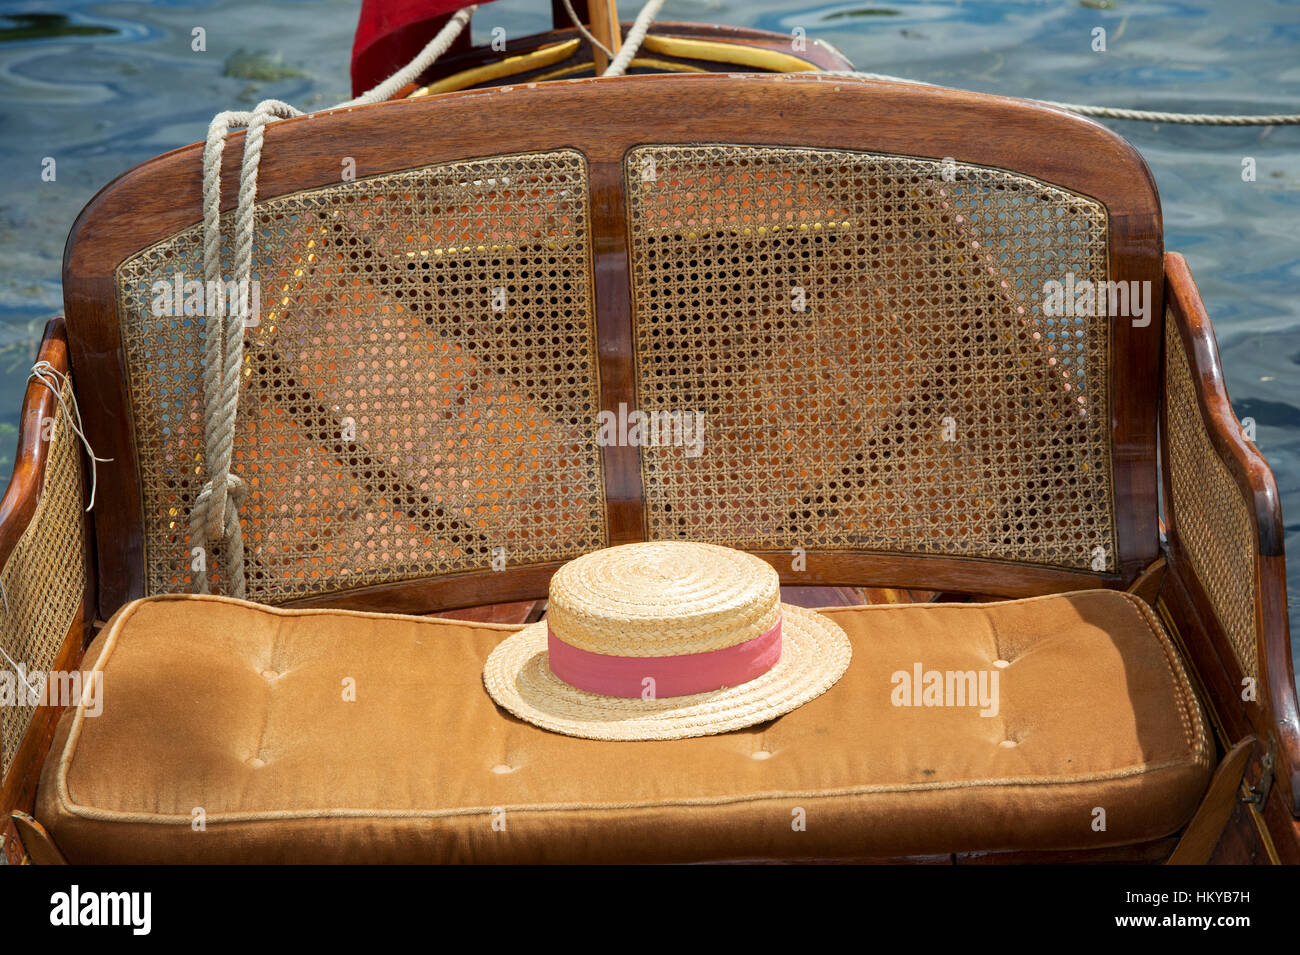 Straw boater on a wooden rowing boat at Henley on Thames boating festival. Henley On Thames, Oxfordshire, England - Stock Image